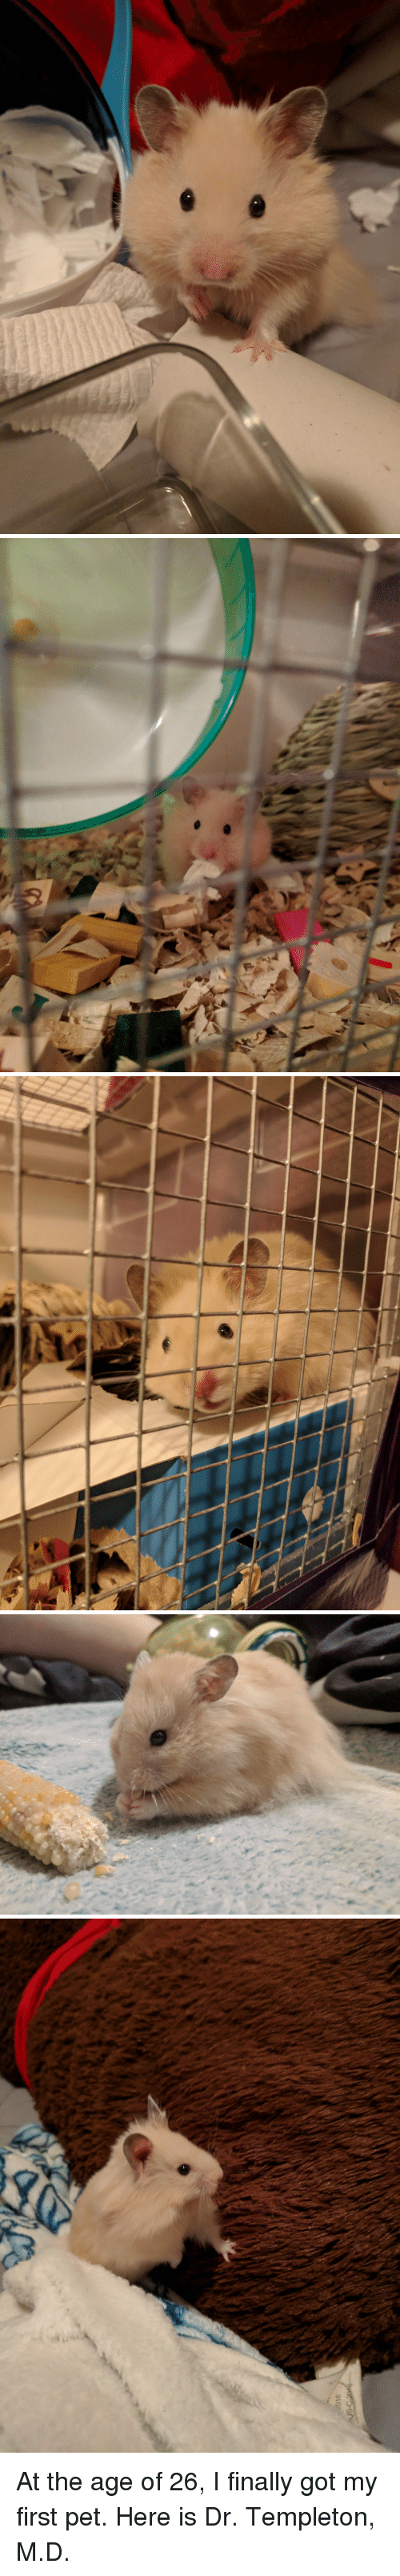 templeton: At the age of 26, I finally got my first pet. Here is Dr. Templeton, M.D.